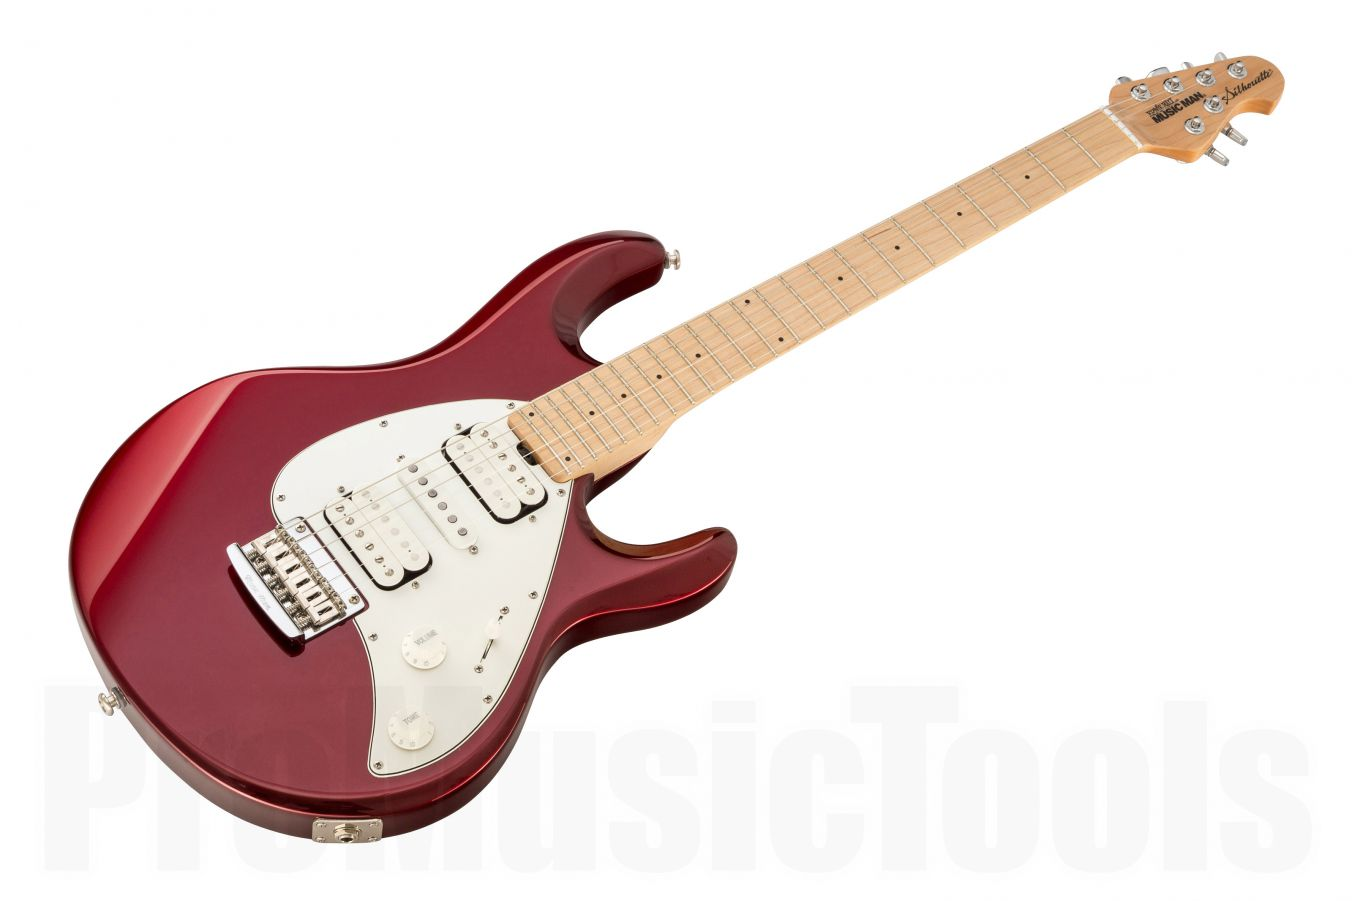 Music Man Usa Silhouette Hsh Std Cr Candy Red Mn Promusictools This Is The Musicman Special Way You Have To Think Of